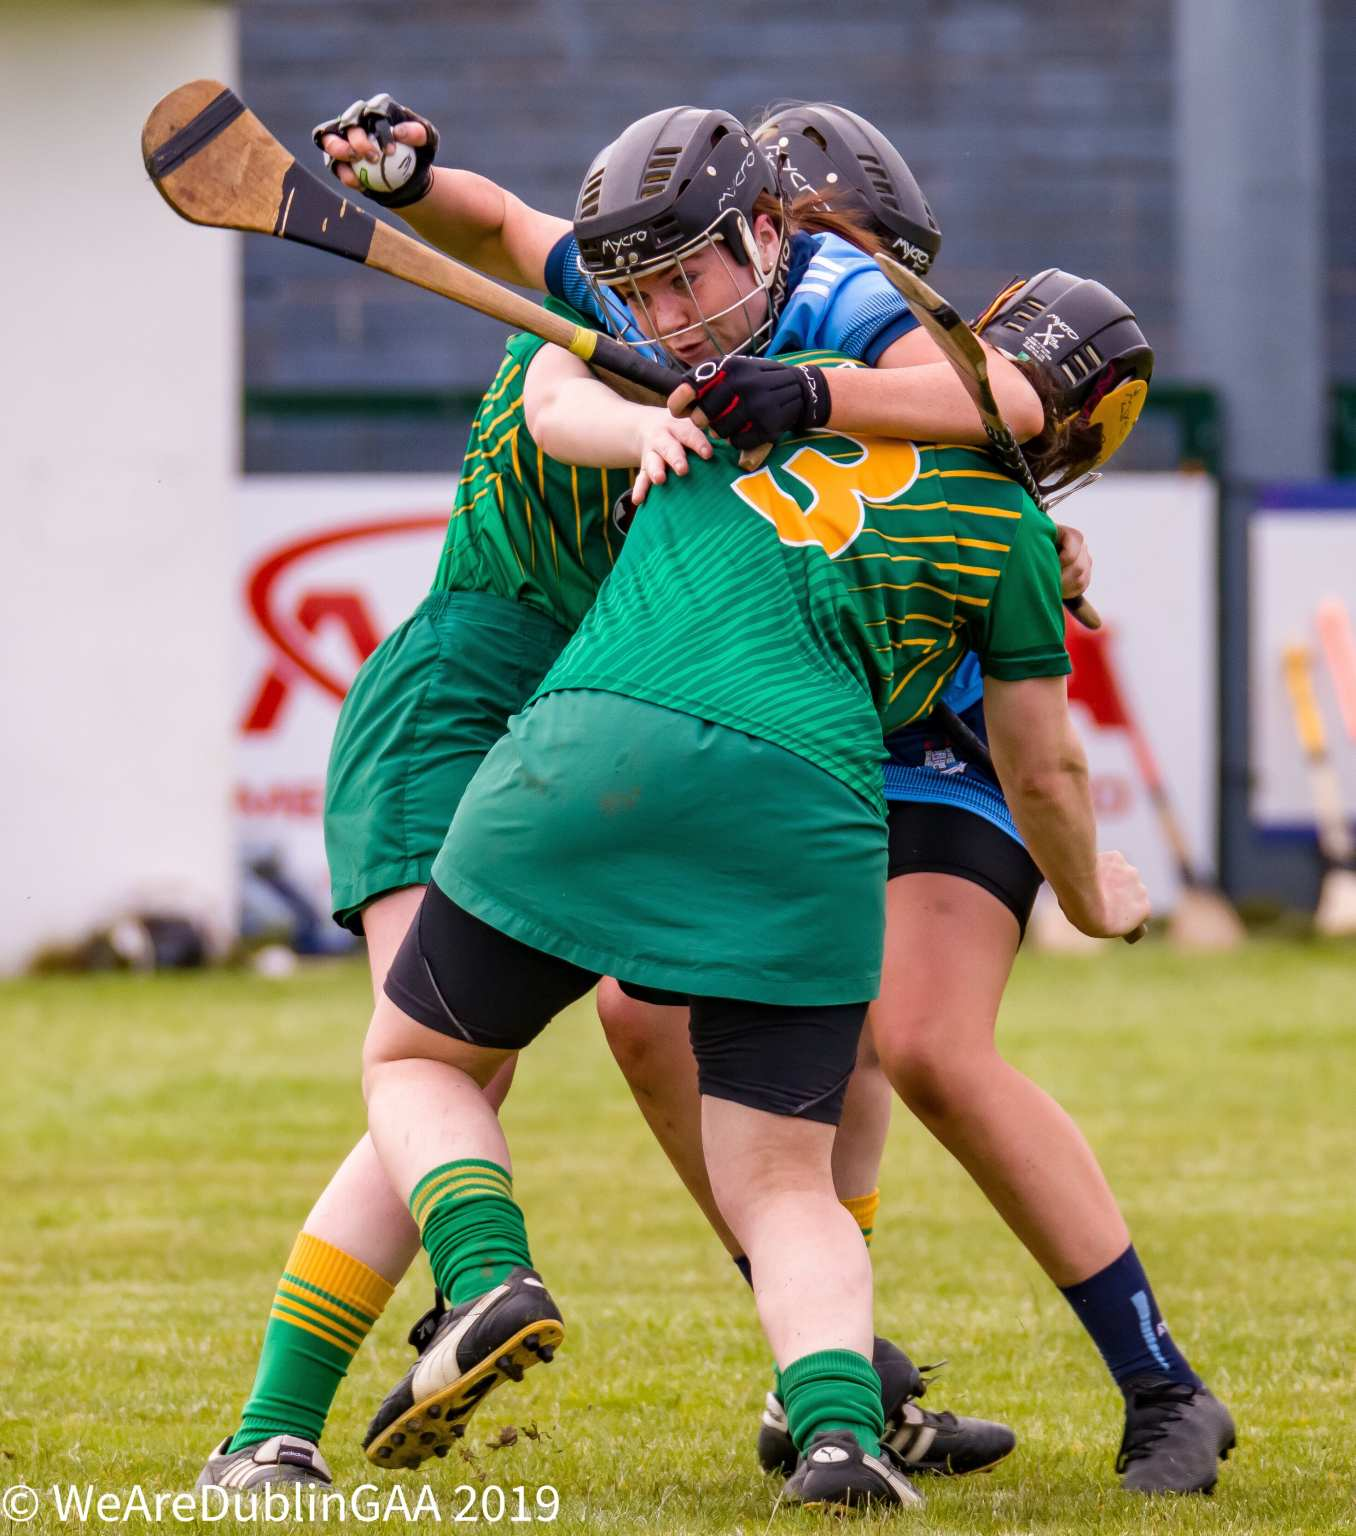 Dublin Camogie player tries to get past the attention of two Meath players, the All Ireland Intermediate Championship starts this weekend.